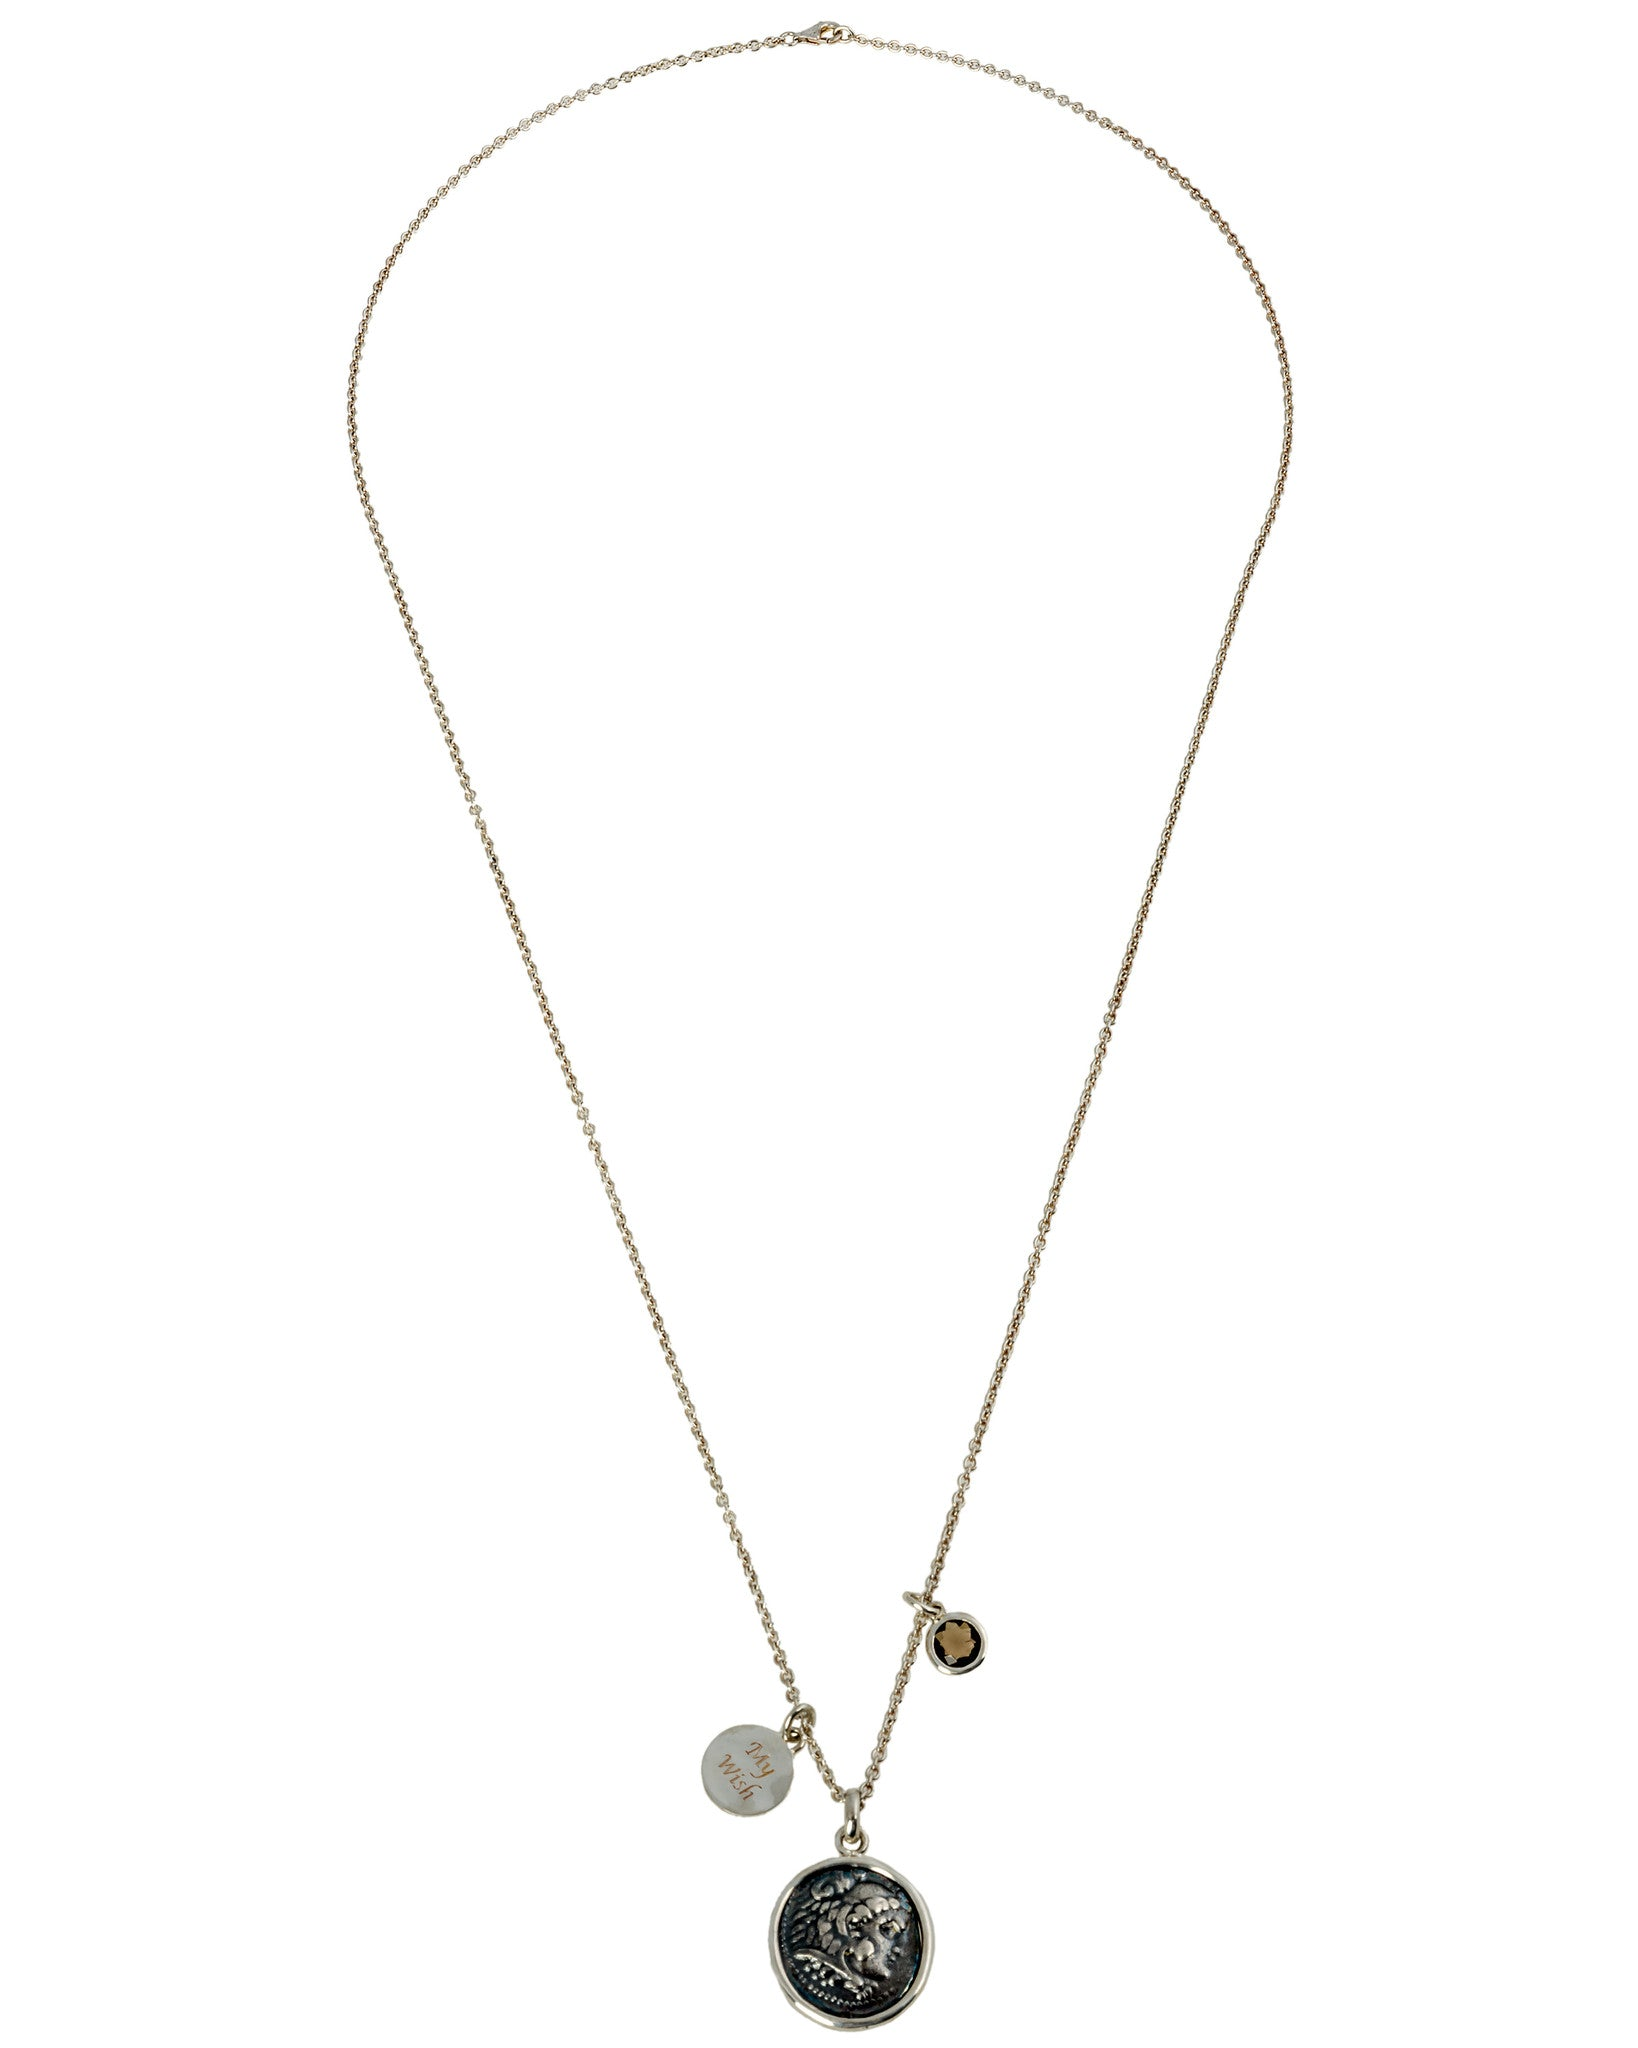 Legacy Vivace Sterling Silver Chain w/ 1 Large Antique Alexander The Great Coin, Sterling Silver Disk and Smoky Quartz (1.50 ct.) Pendants - Chain Length: 36 in